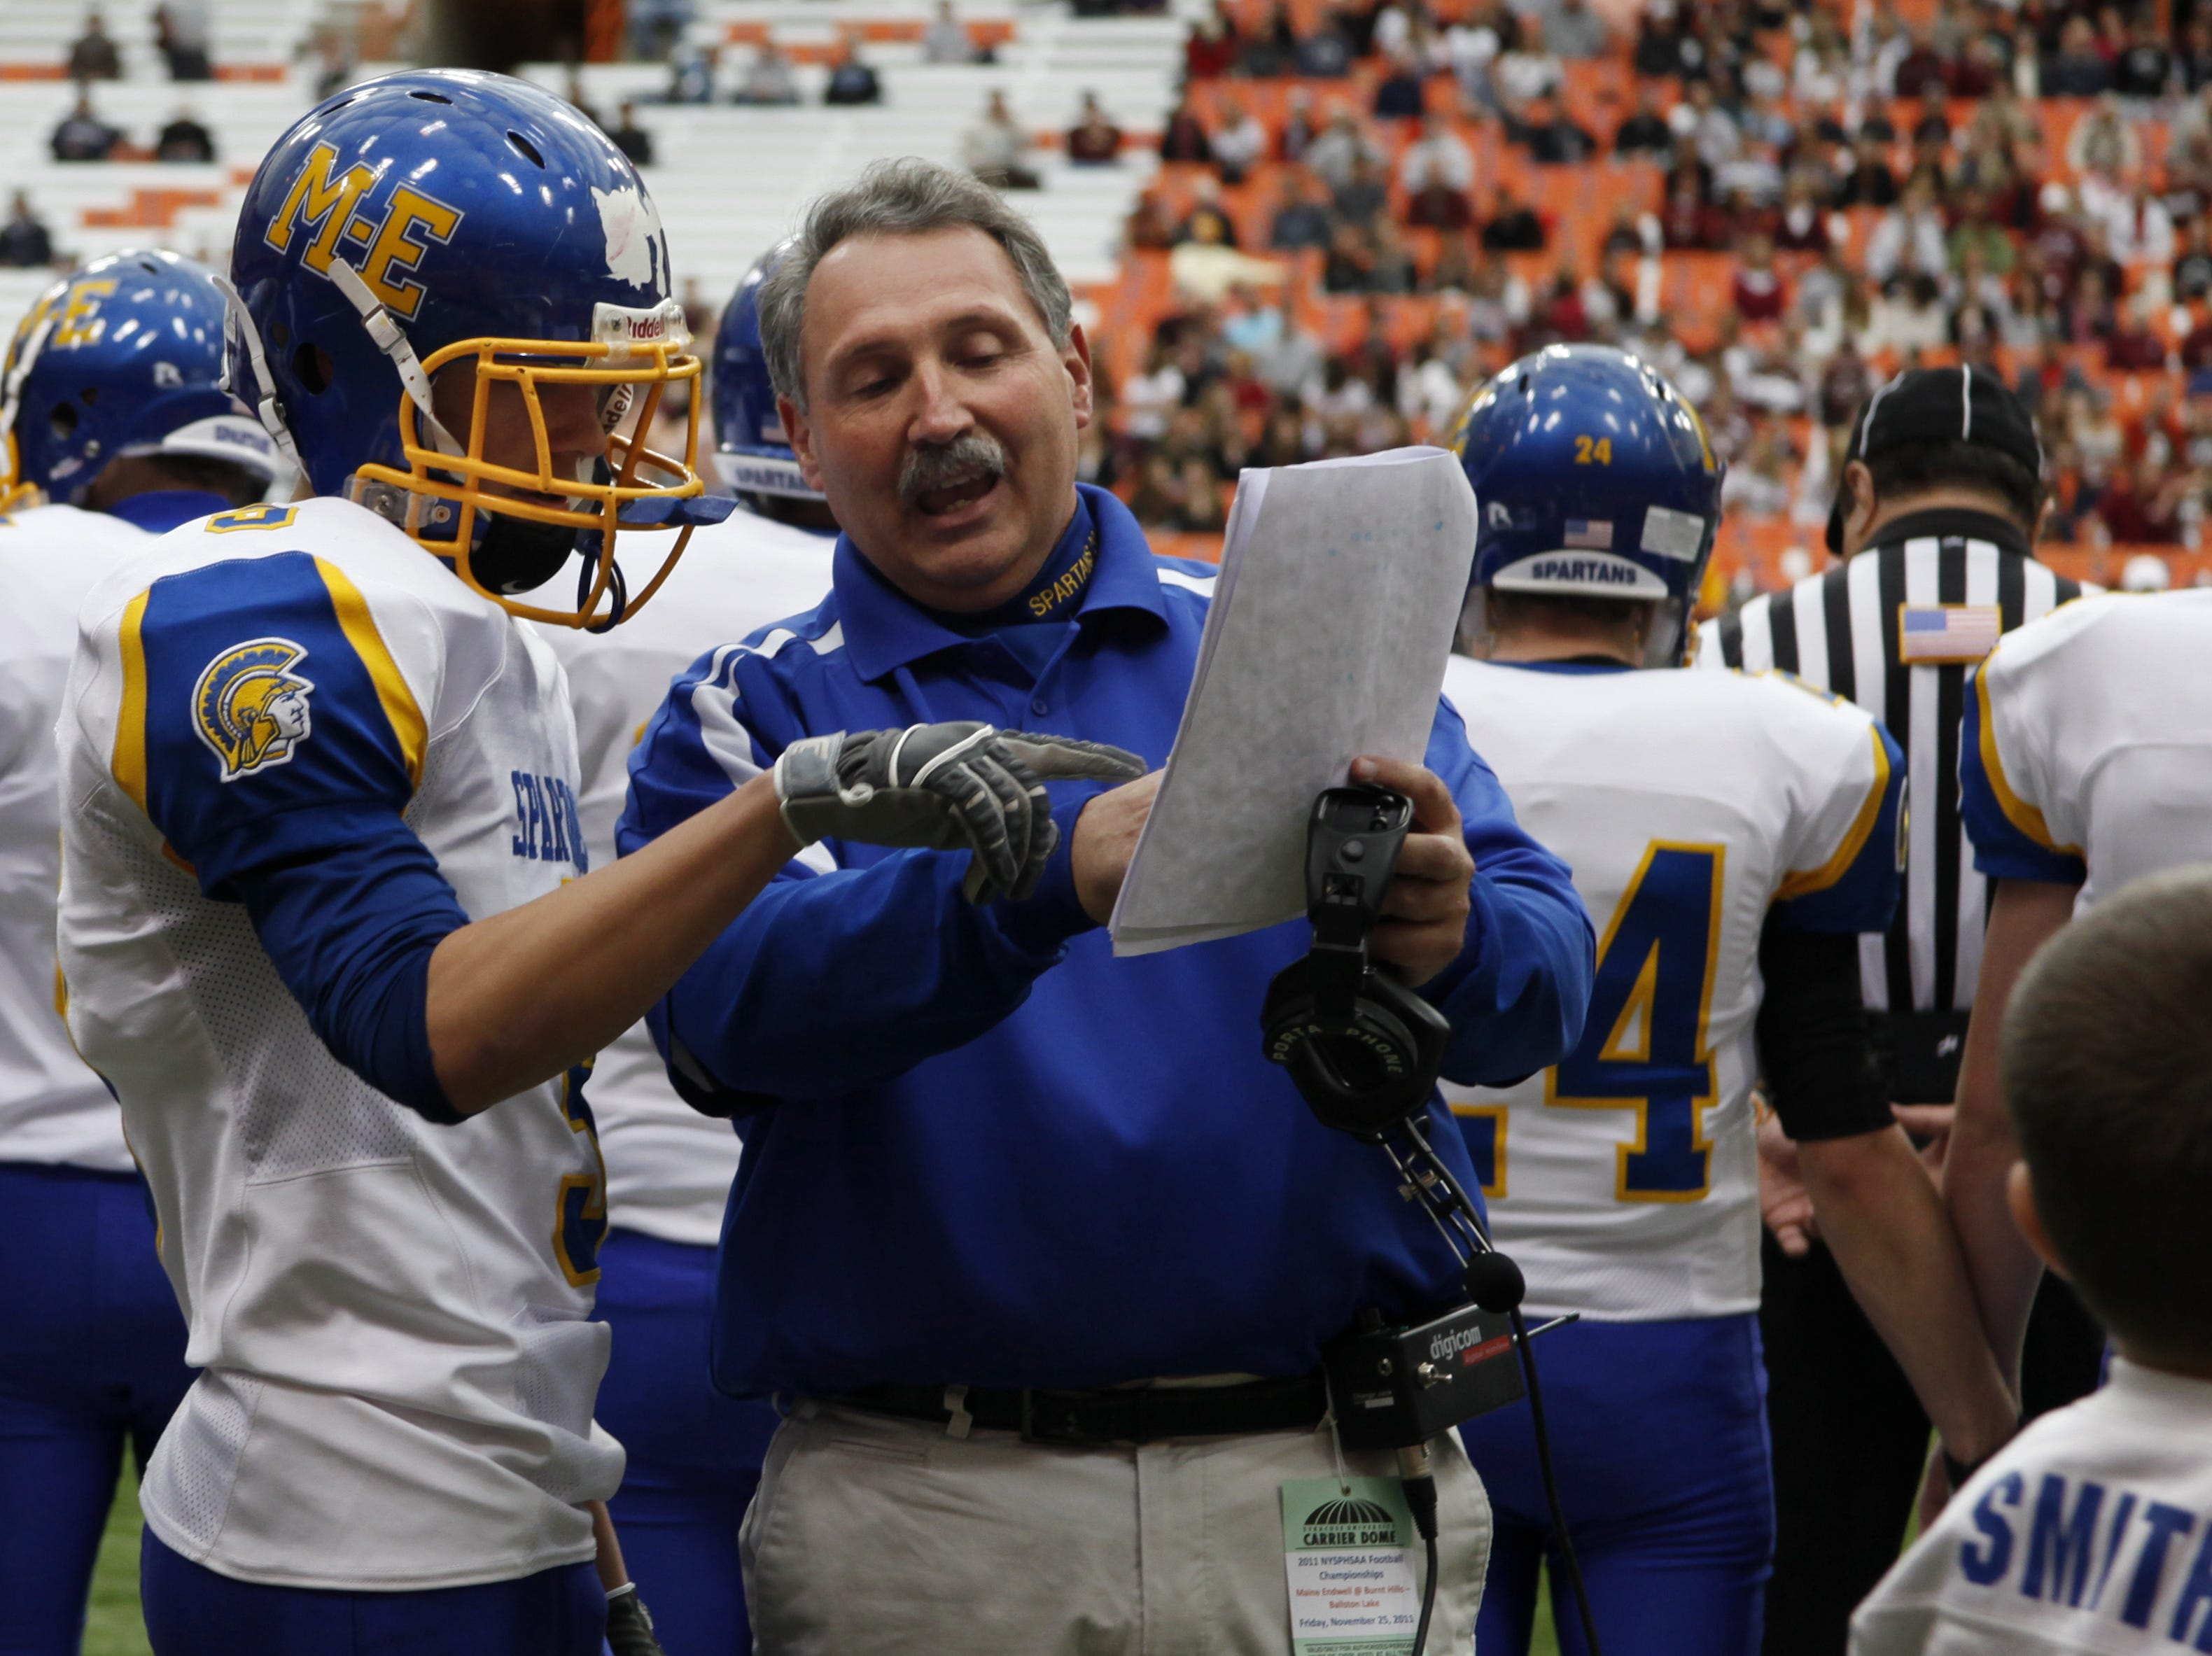 Maine Endwell's Coach Gary Crooks takes a minute to review with Robert Allen before the start of the Class A New York State High School Football Championship held in Syracuse's Carrier Dome.